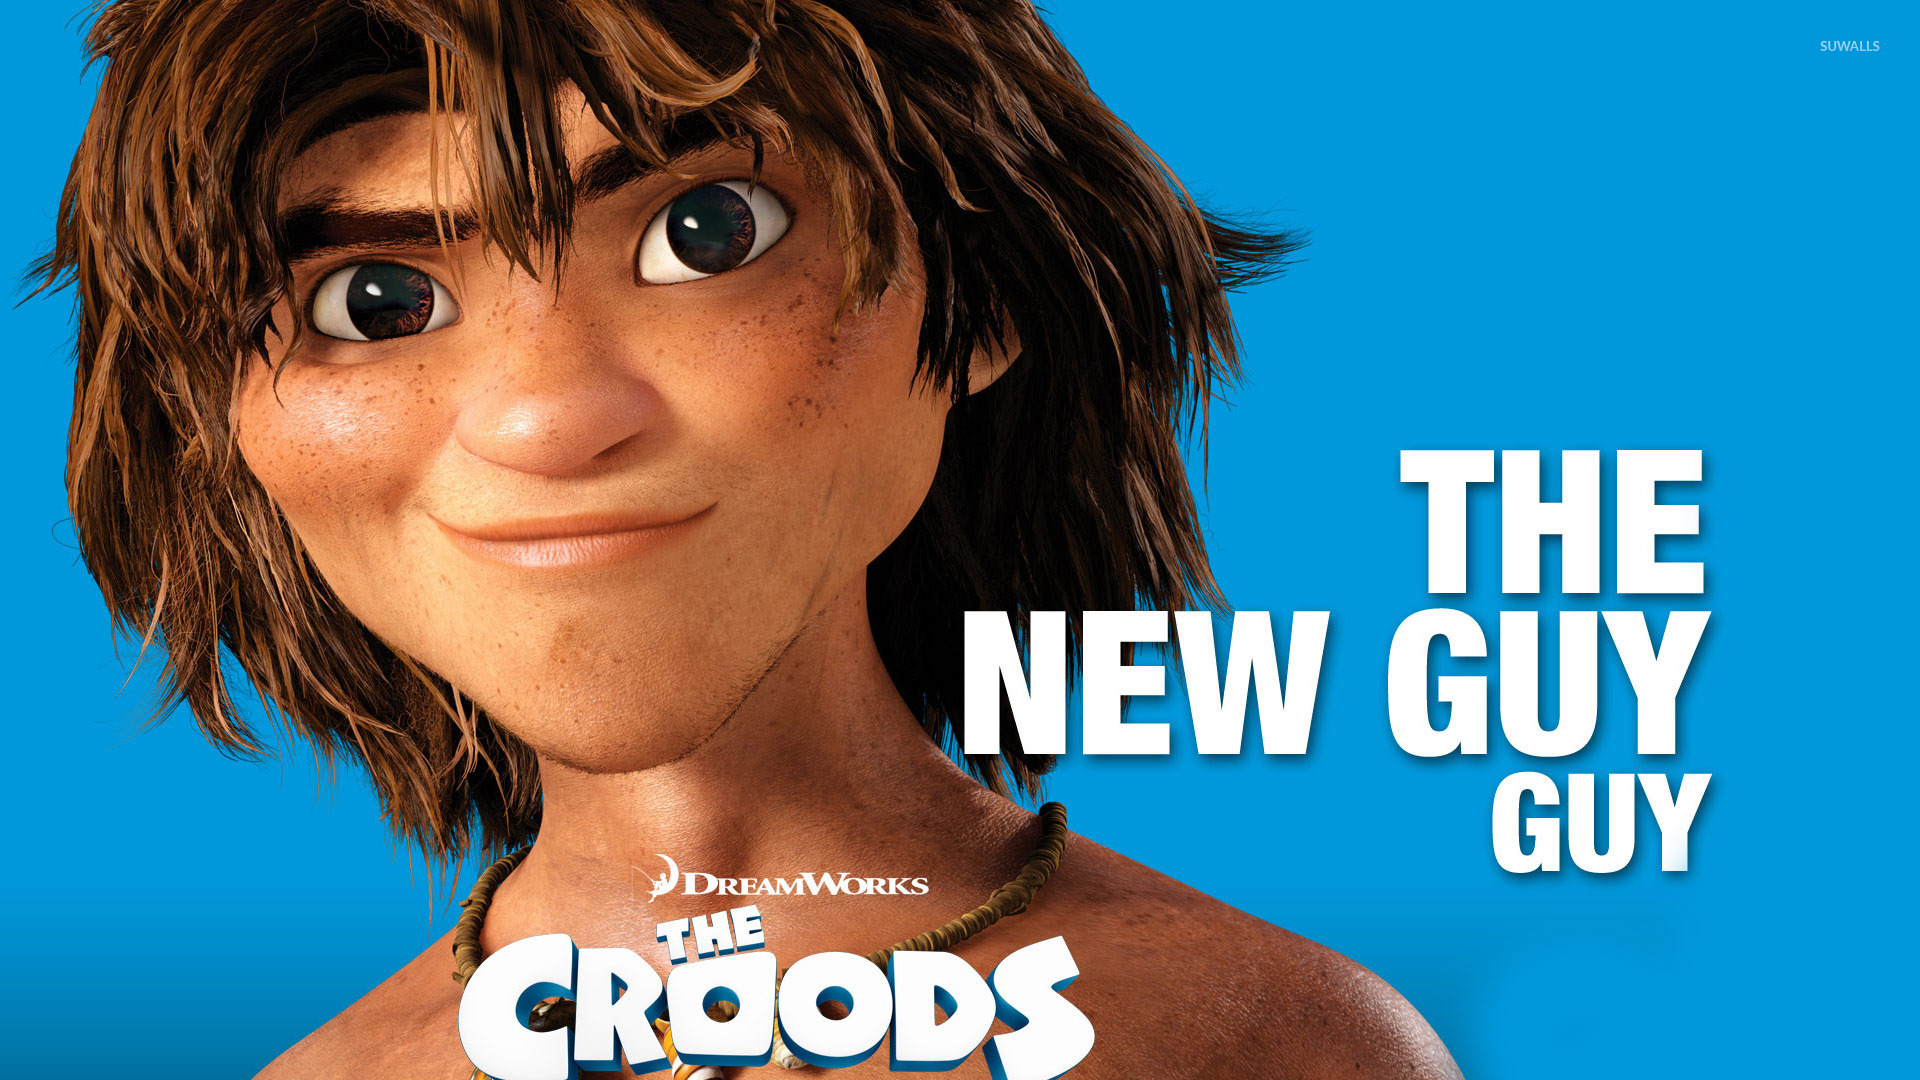 Guy the croods 3 wallpaper cartoon wallpapers 19119 guy the croods 3 wallpaper voltagebd Gallery